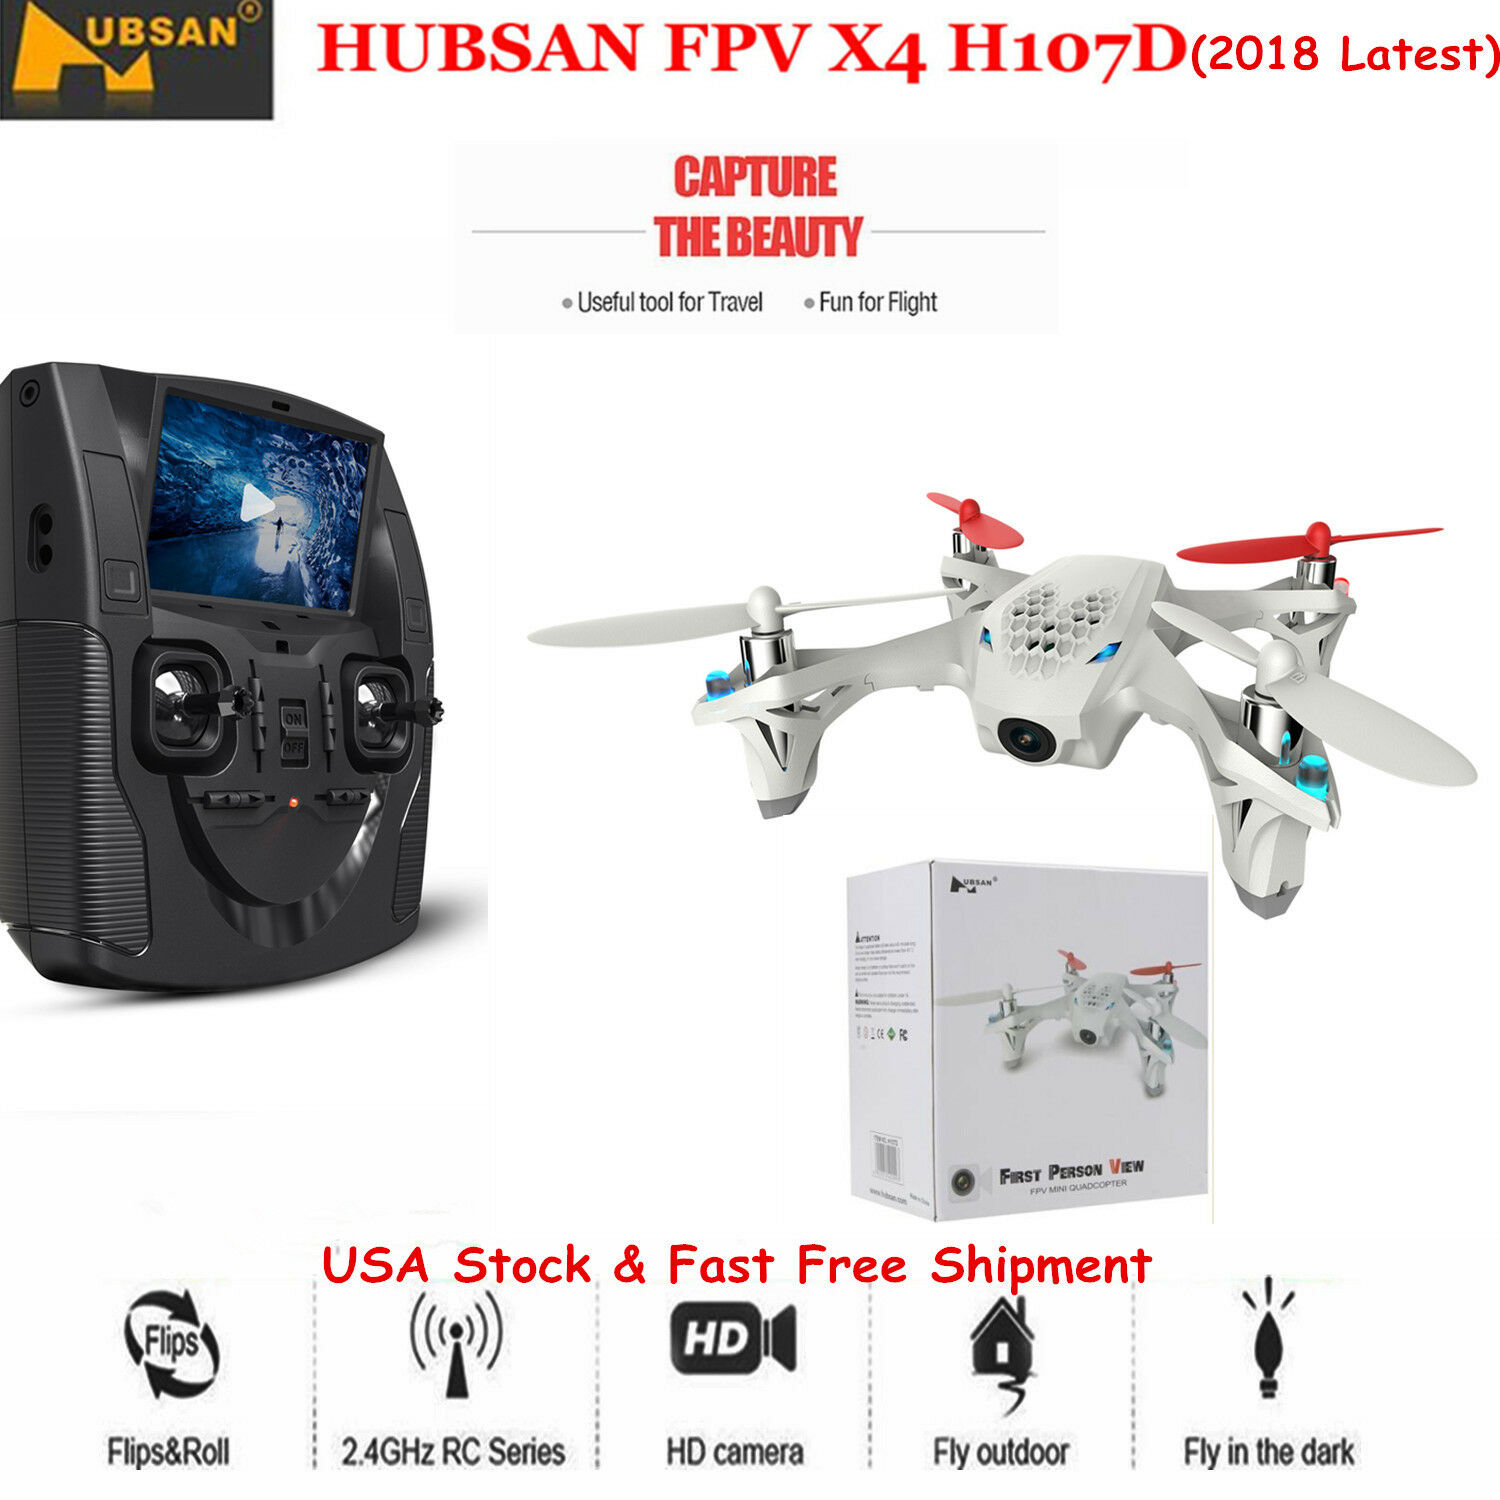 Hubsan x4 h107d 5.8g fpv 4ch rc quadcopter spielzeug w   480p hd - cam hat 360 rotierenden uns